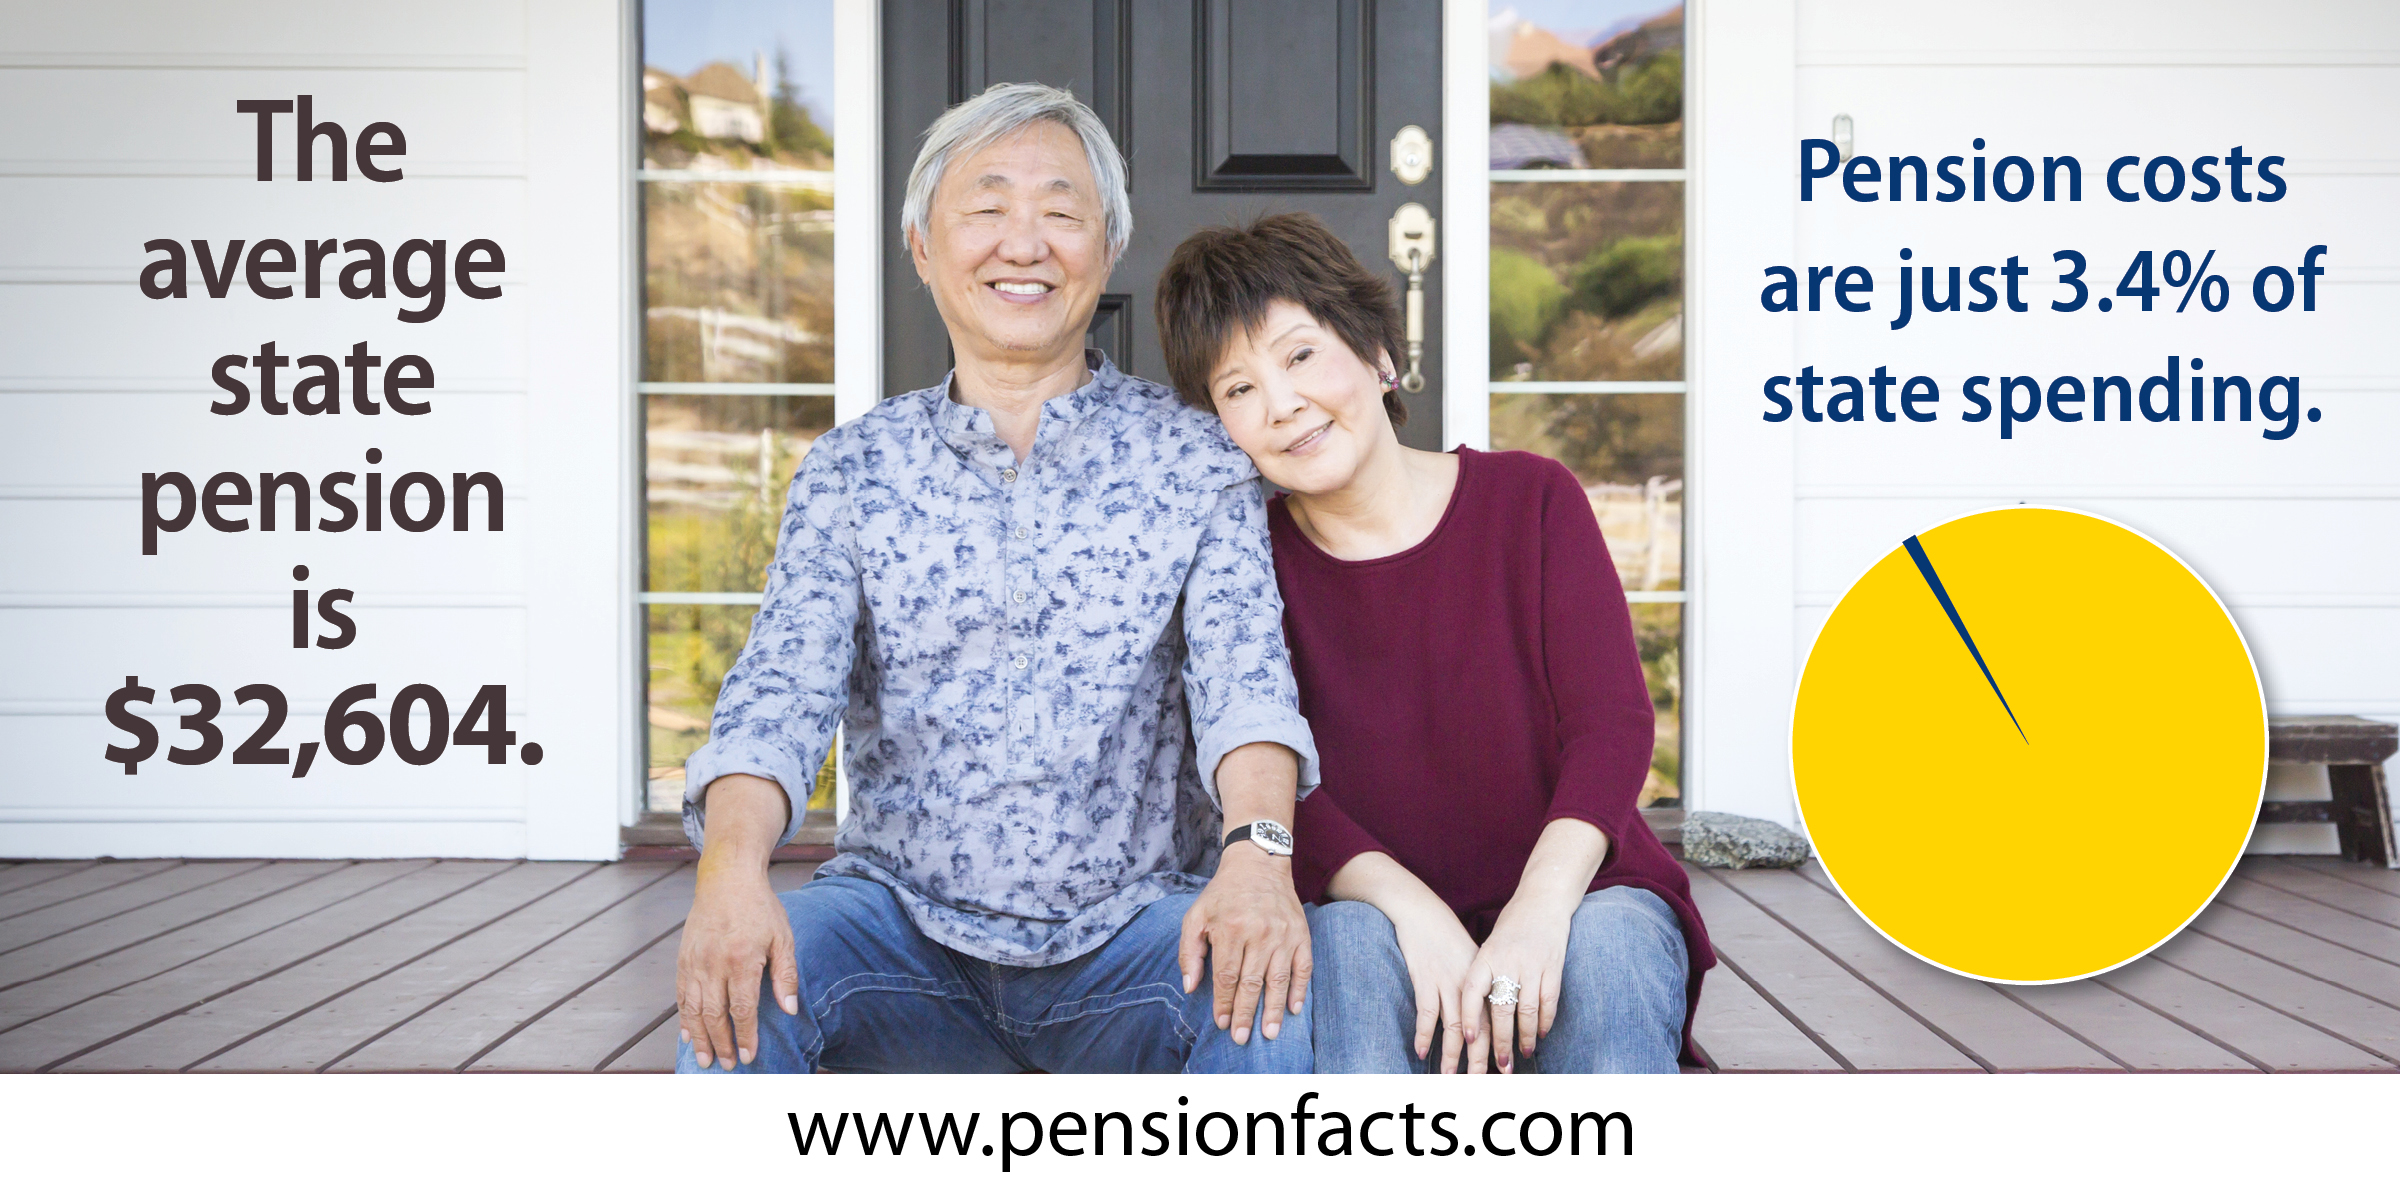 The average state pension is $32,604.